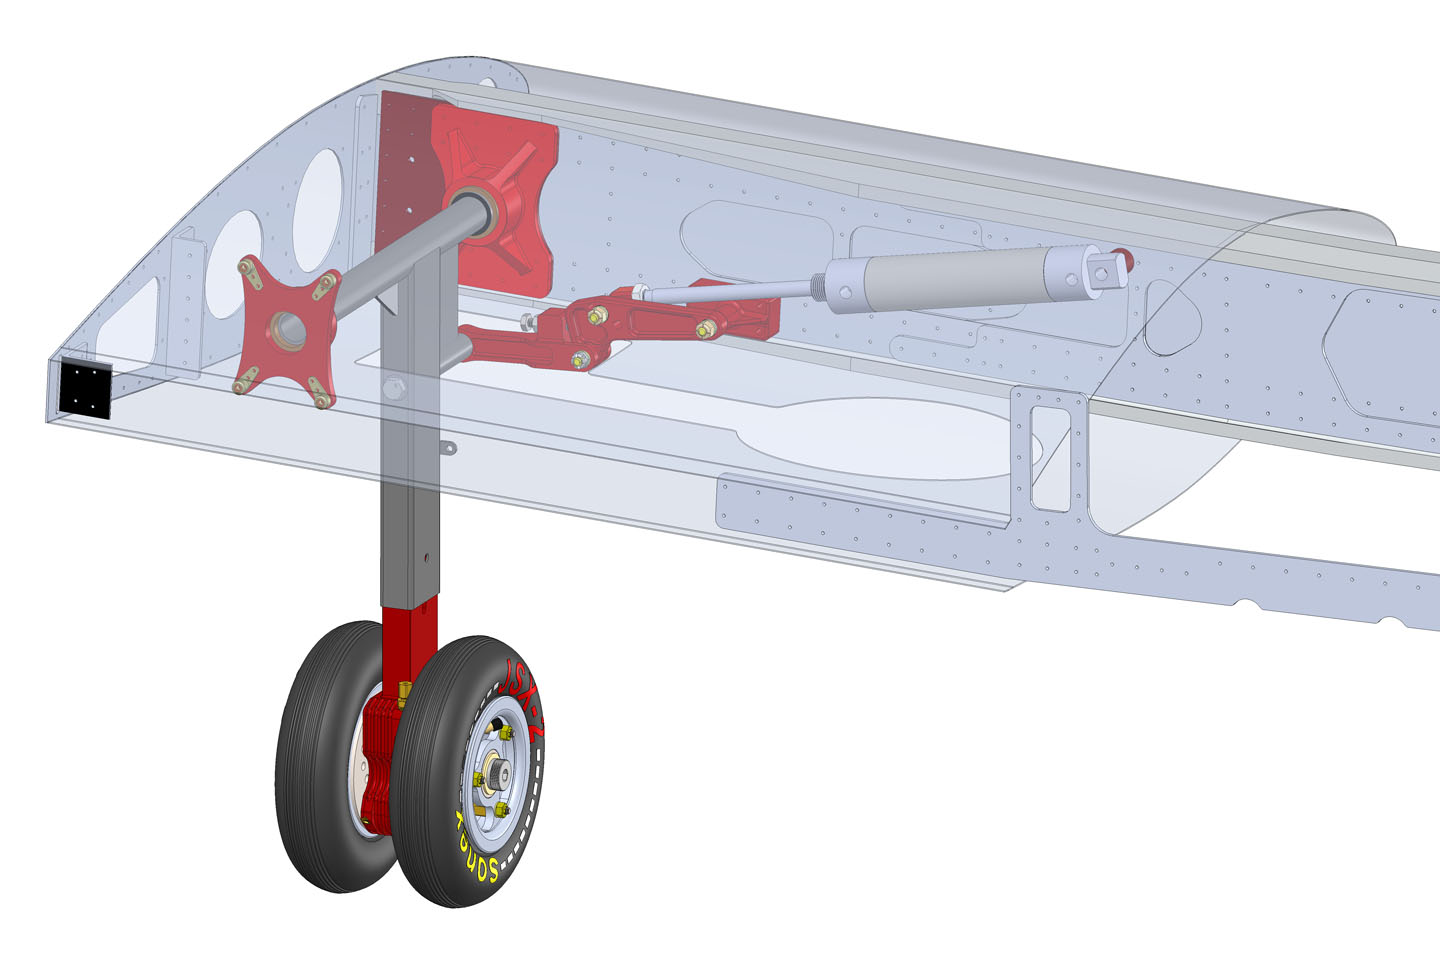 SubSonex Retractable Main Landing Gear